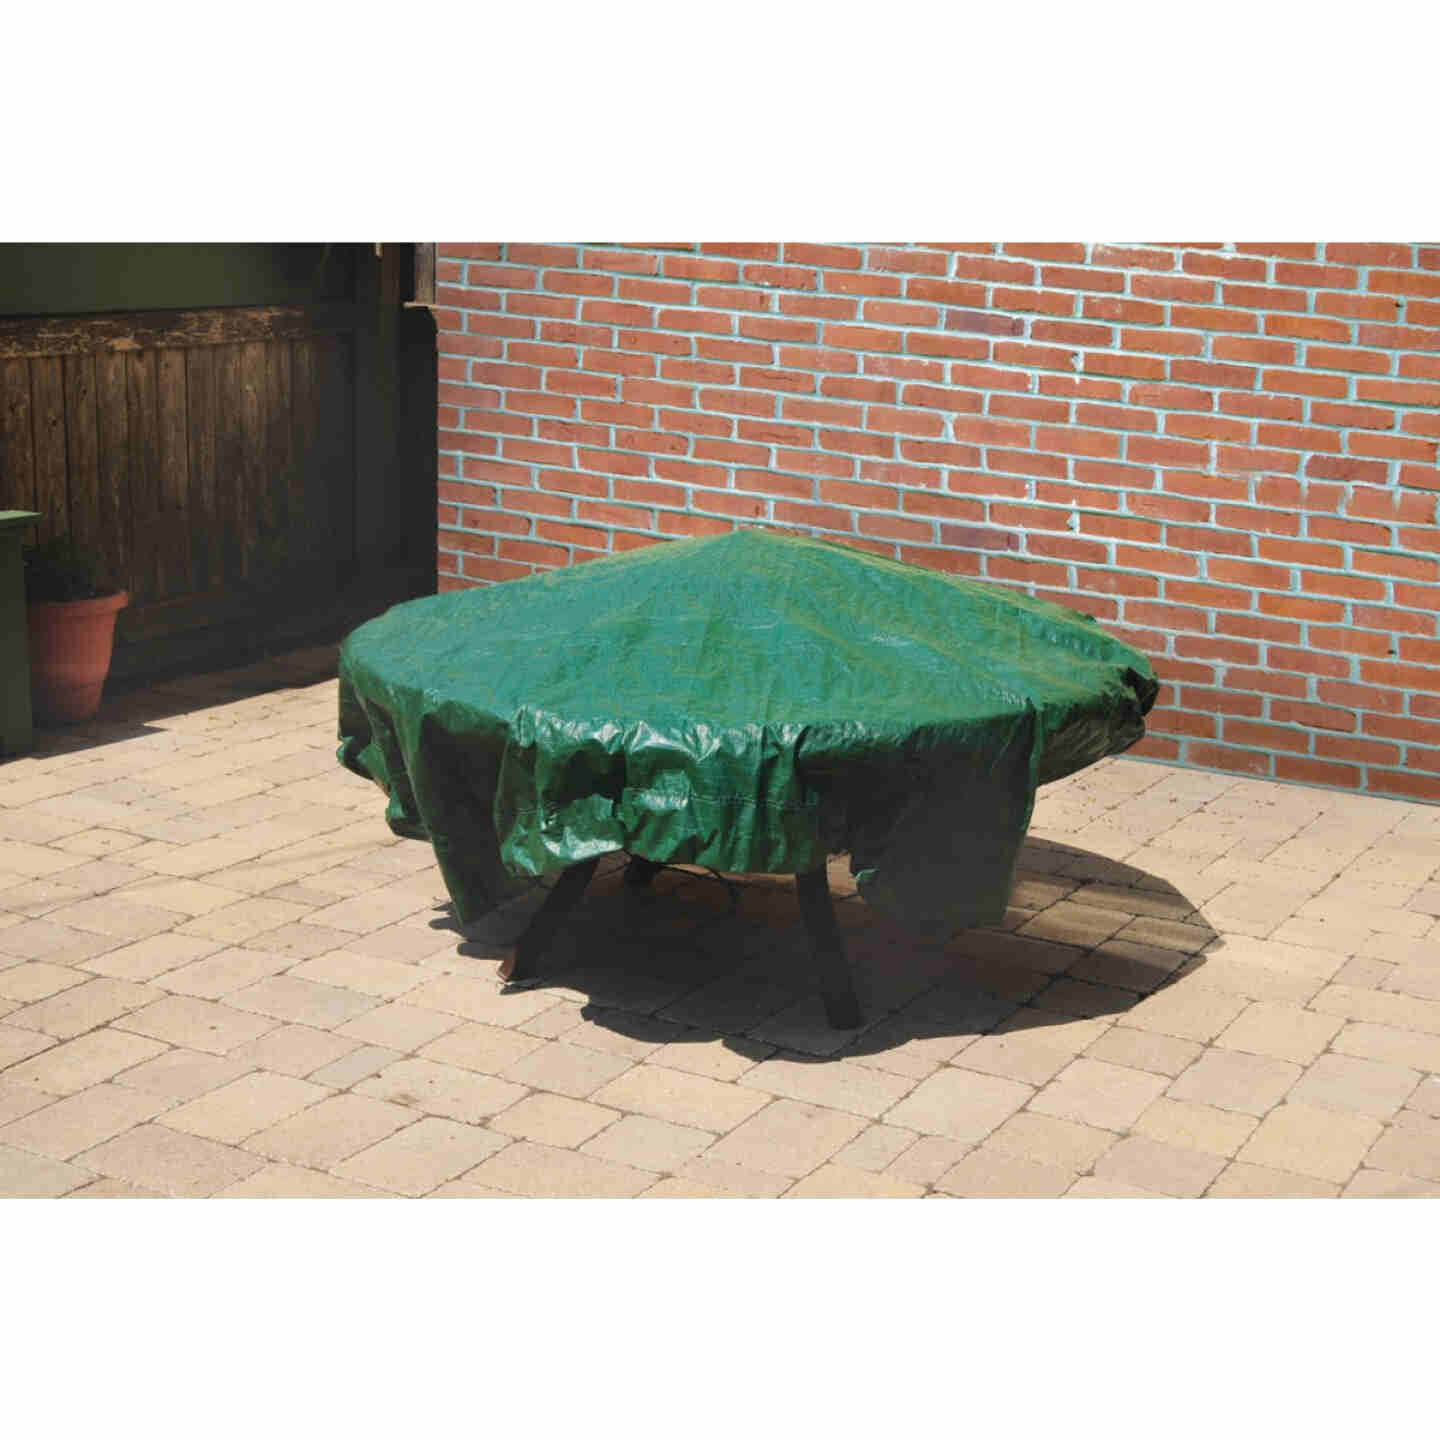 Do it Best  6 Ft. x 6 Ft. Poly Fabric Green Lawn Cleanup Tarp Image 5